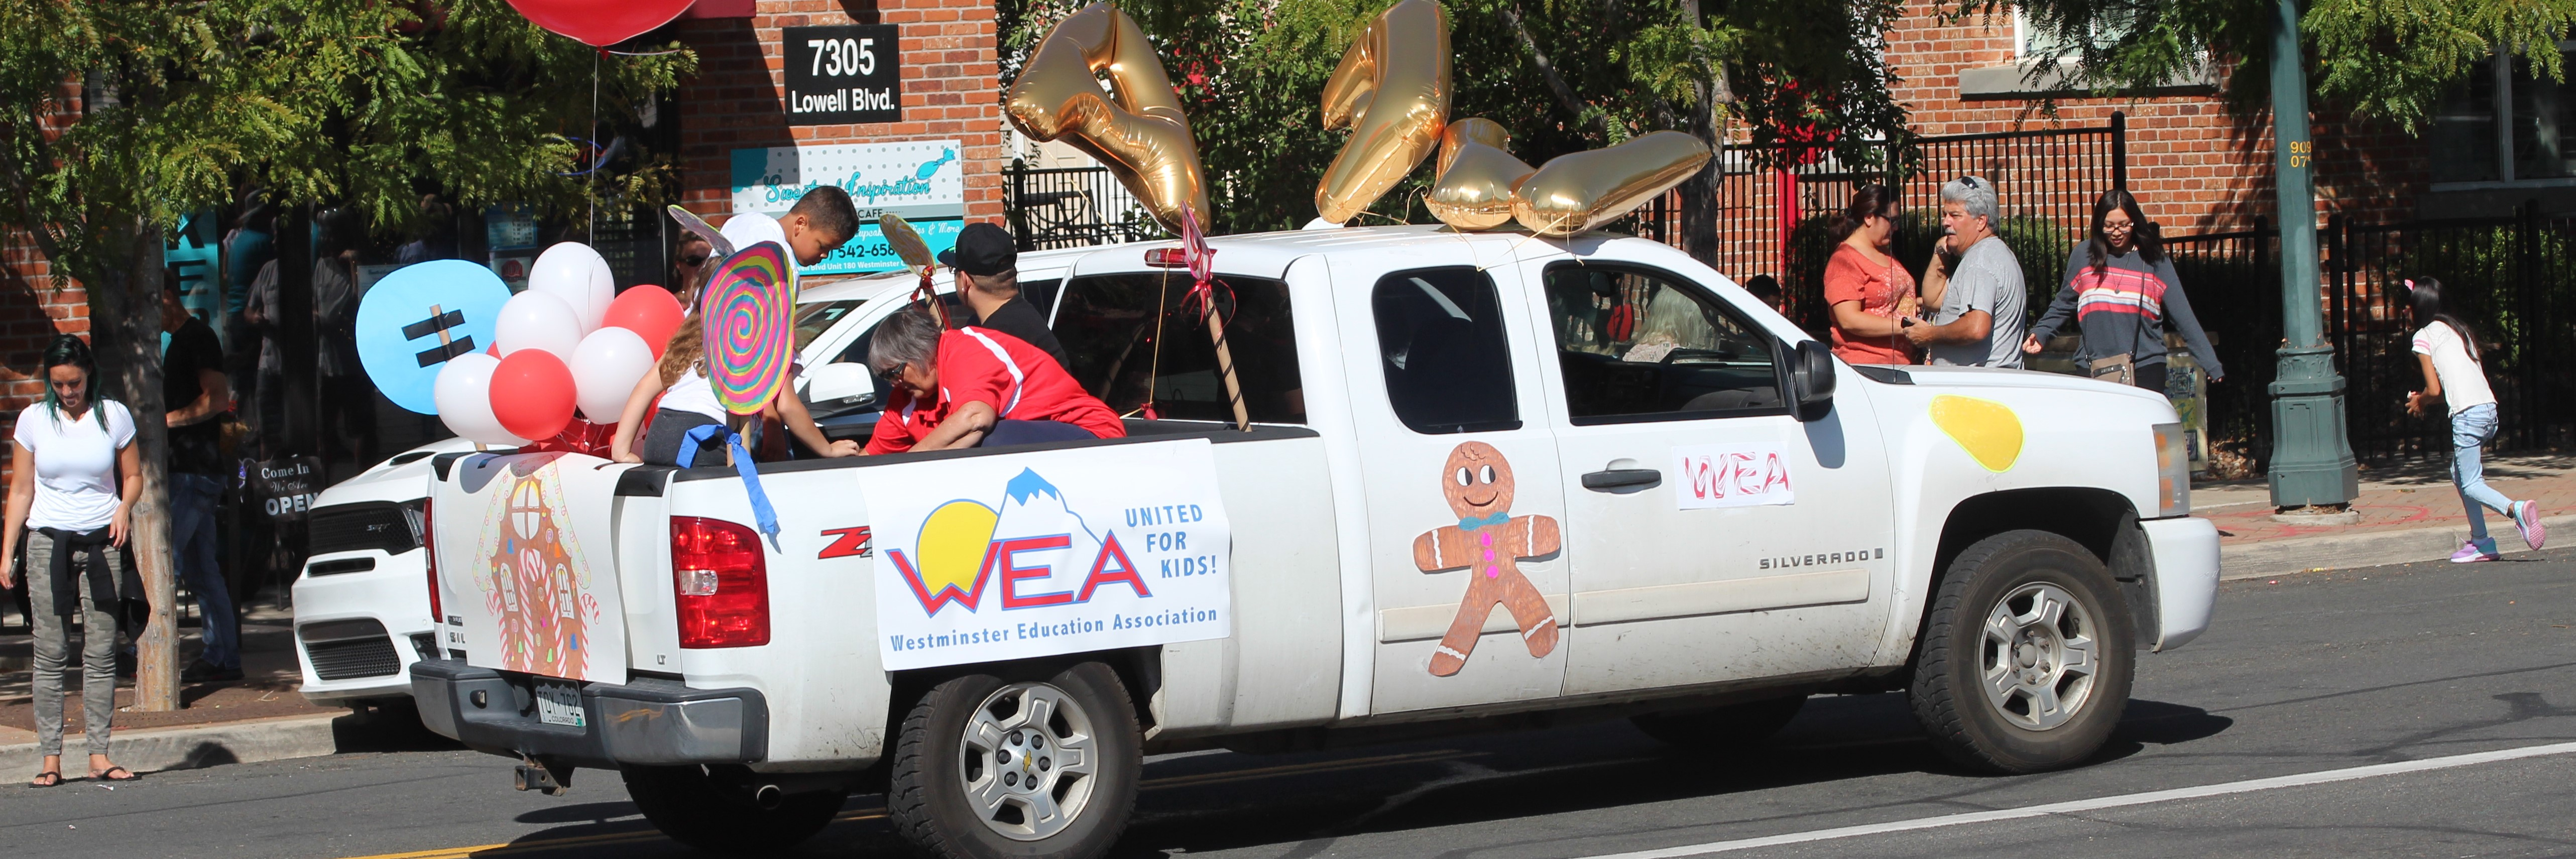 WEA join Westminster High School Homecoming Parade